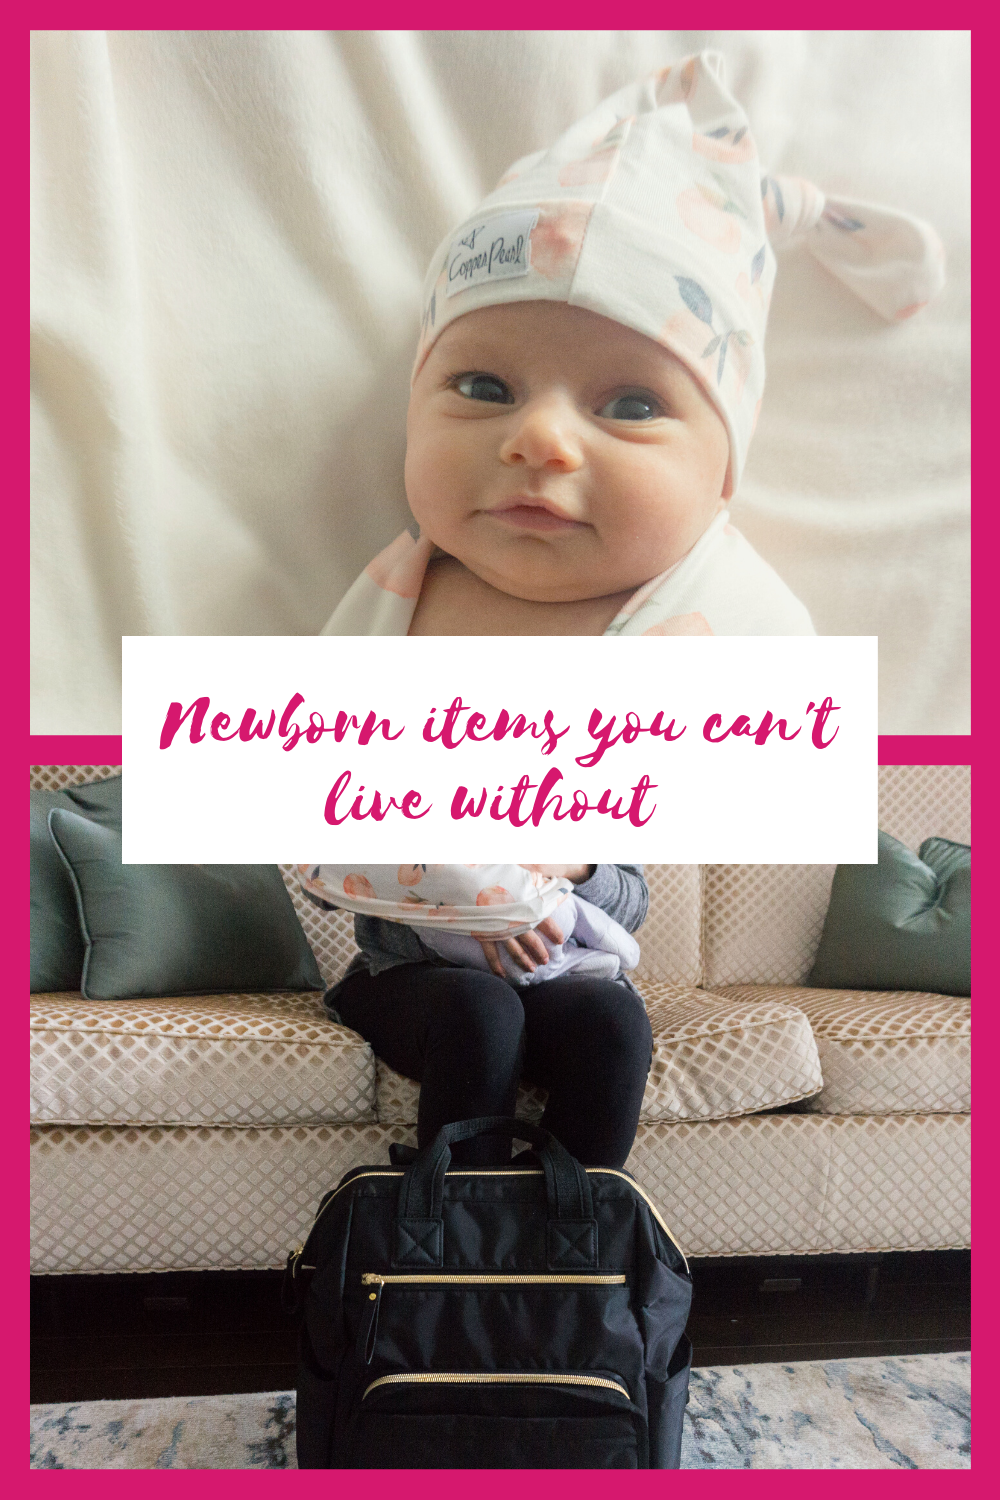 Newborn items you can't live without